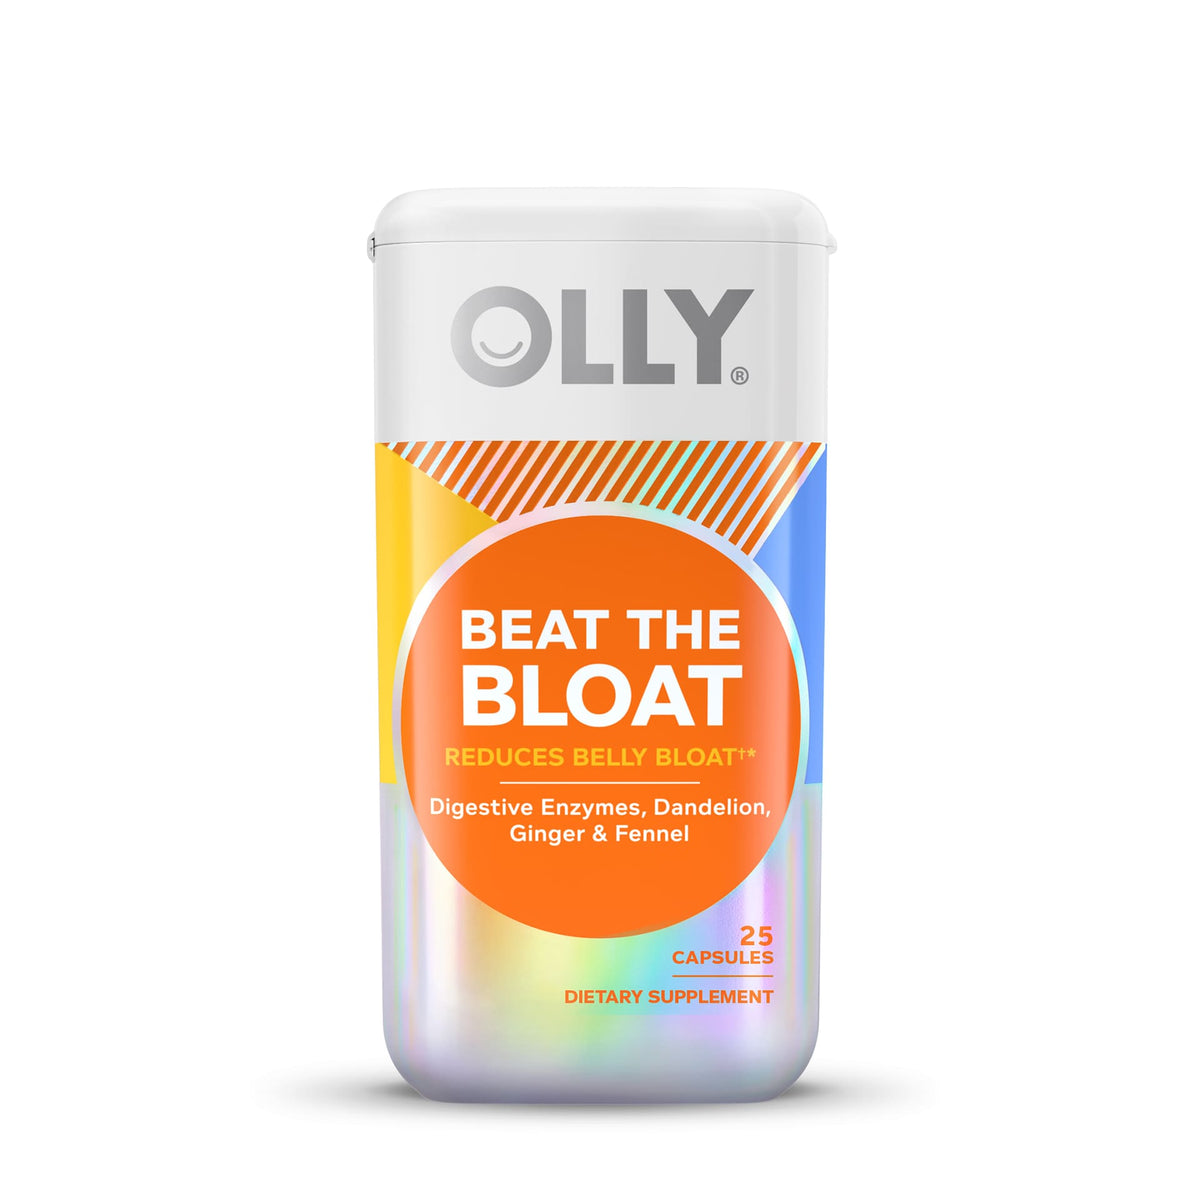 Beat the Bloat Image